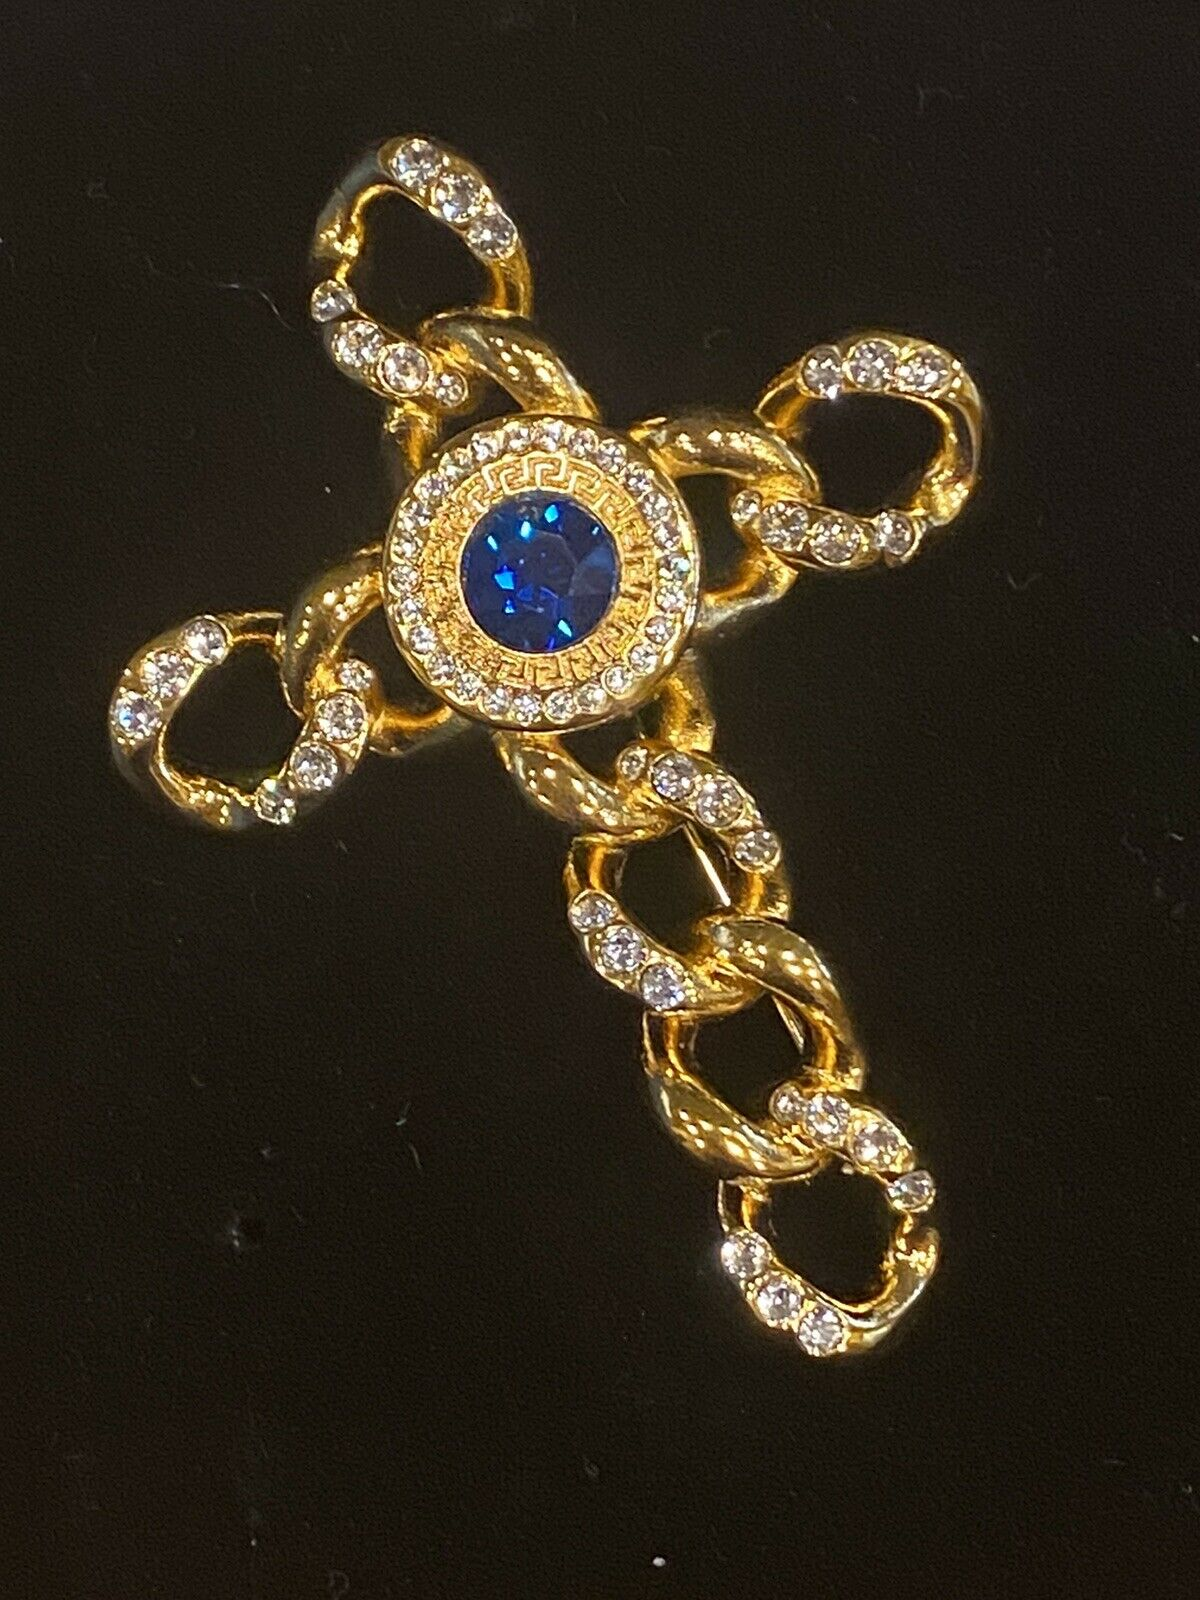 SIGNED VINTAGE GOLD PLATED GIANNI VERSACE CRYSTAL… - image 5